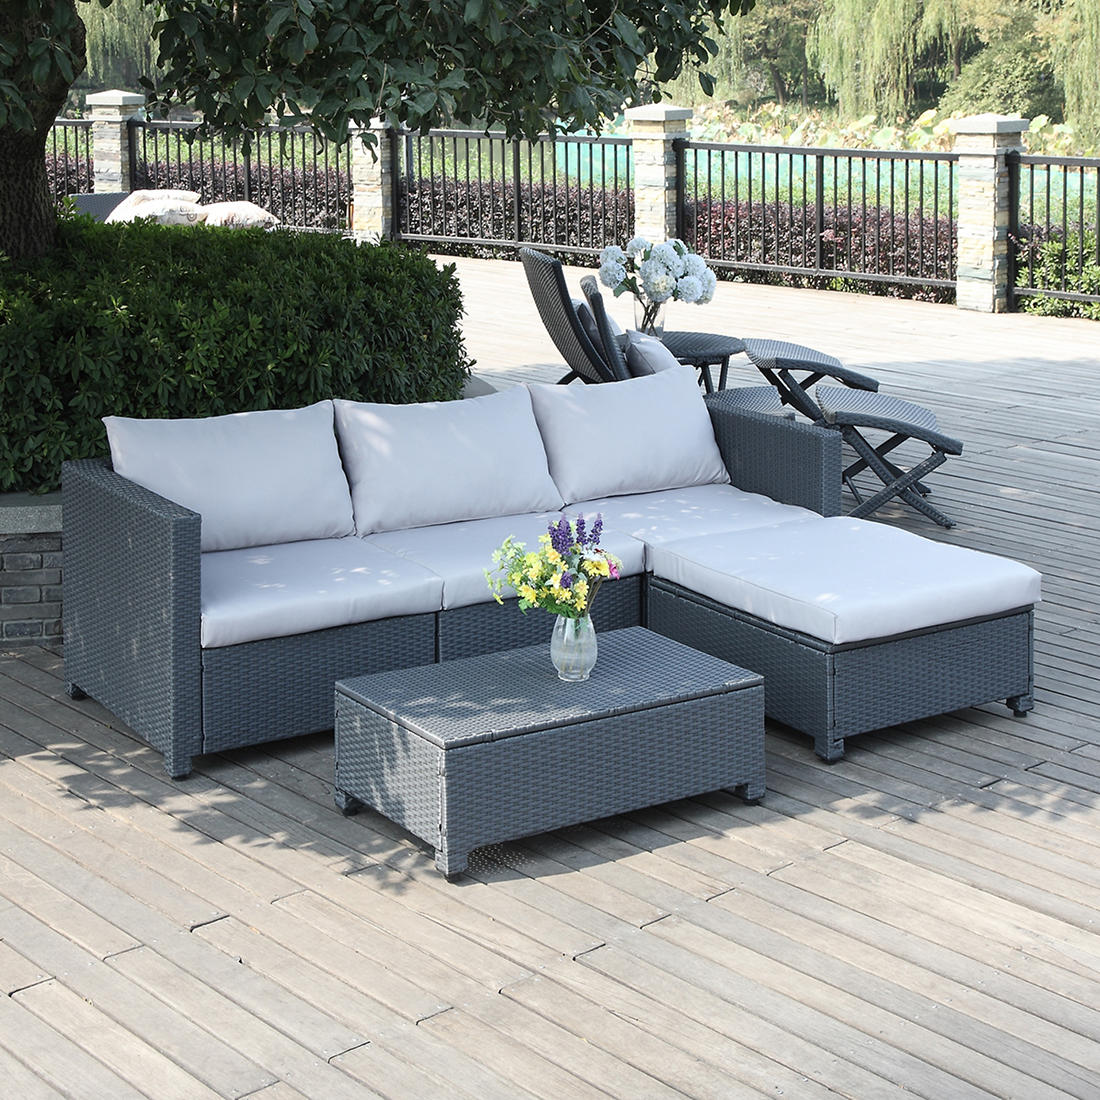 Groovy Handy Living Azura Rattan Outdoor Sectional And Table Set Gray Gray Inzonedesignstudio Interior Chair Design Inzonedesignstudiocom